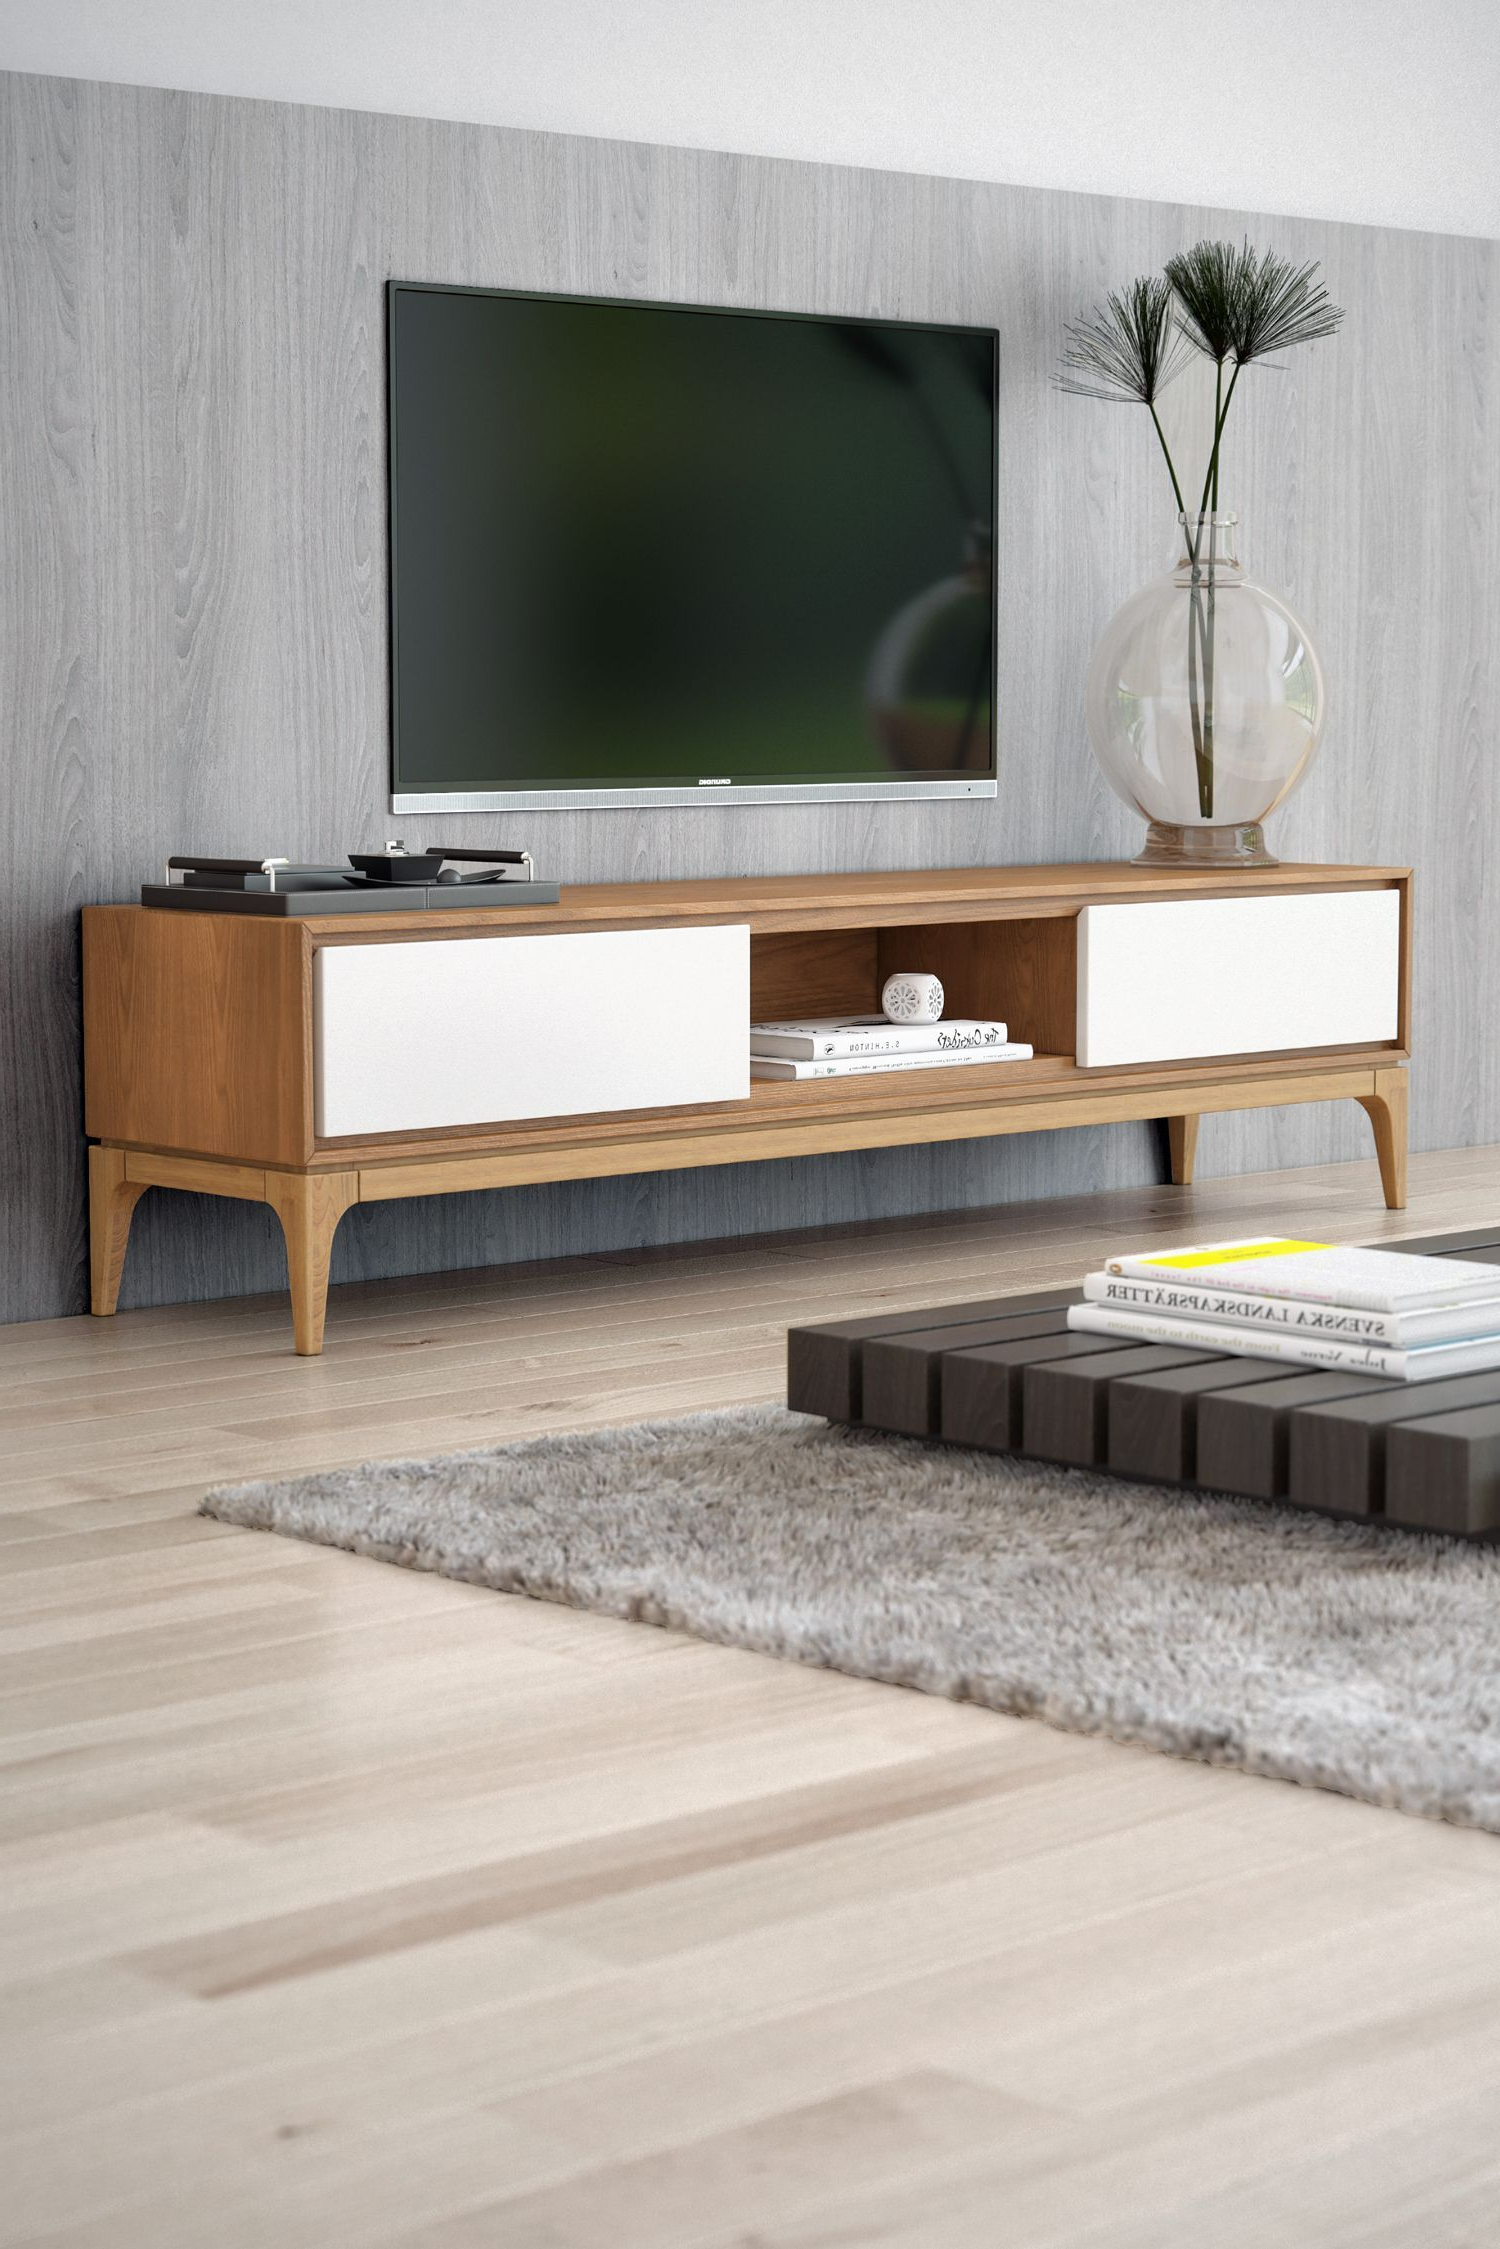 Rove Concepts Rove Concepts Mid Century Furniture With Regard To Vista 60 Inch Tv Stands (View 14 of 20)